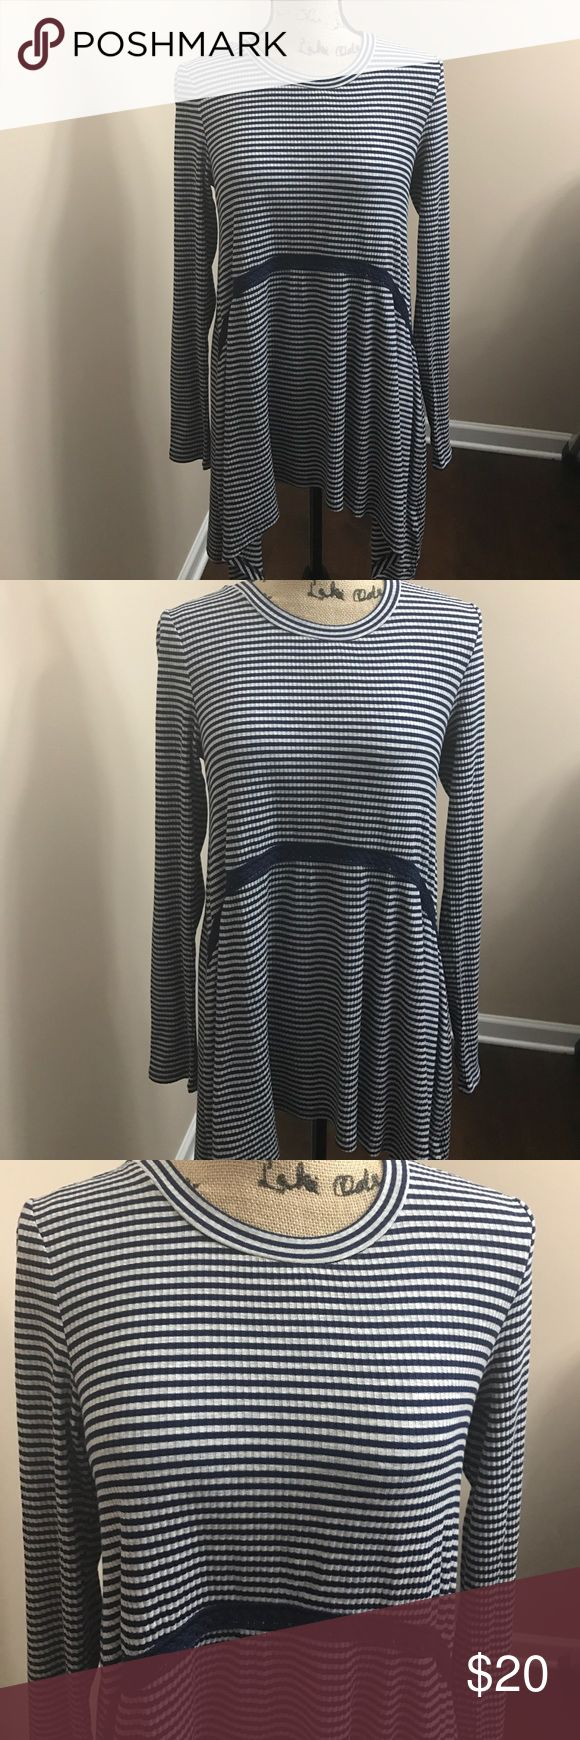 SALE NWOT Asymmetrical Top Blue and white top from Red Camel! New without tags. Crochet detailing with a slinky soft fabric. Size Medium Red Camel Tops Blouses